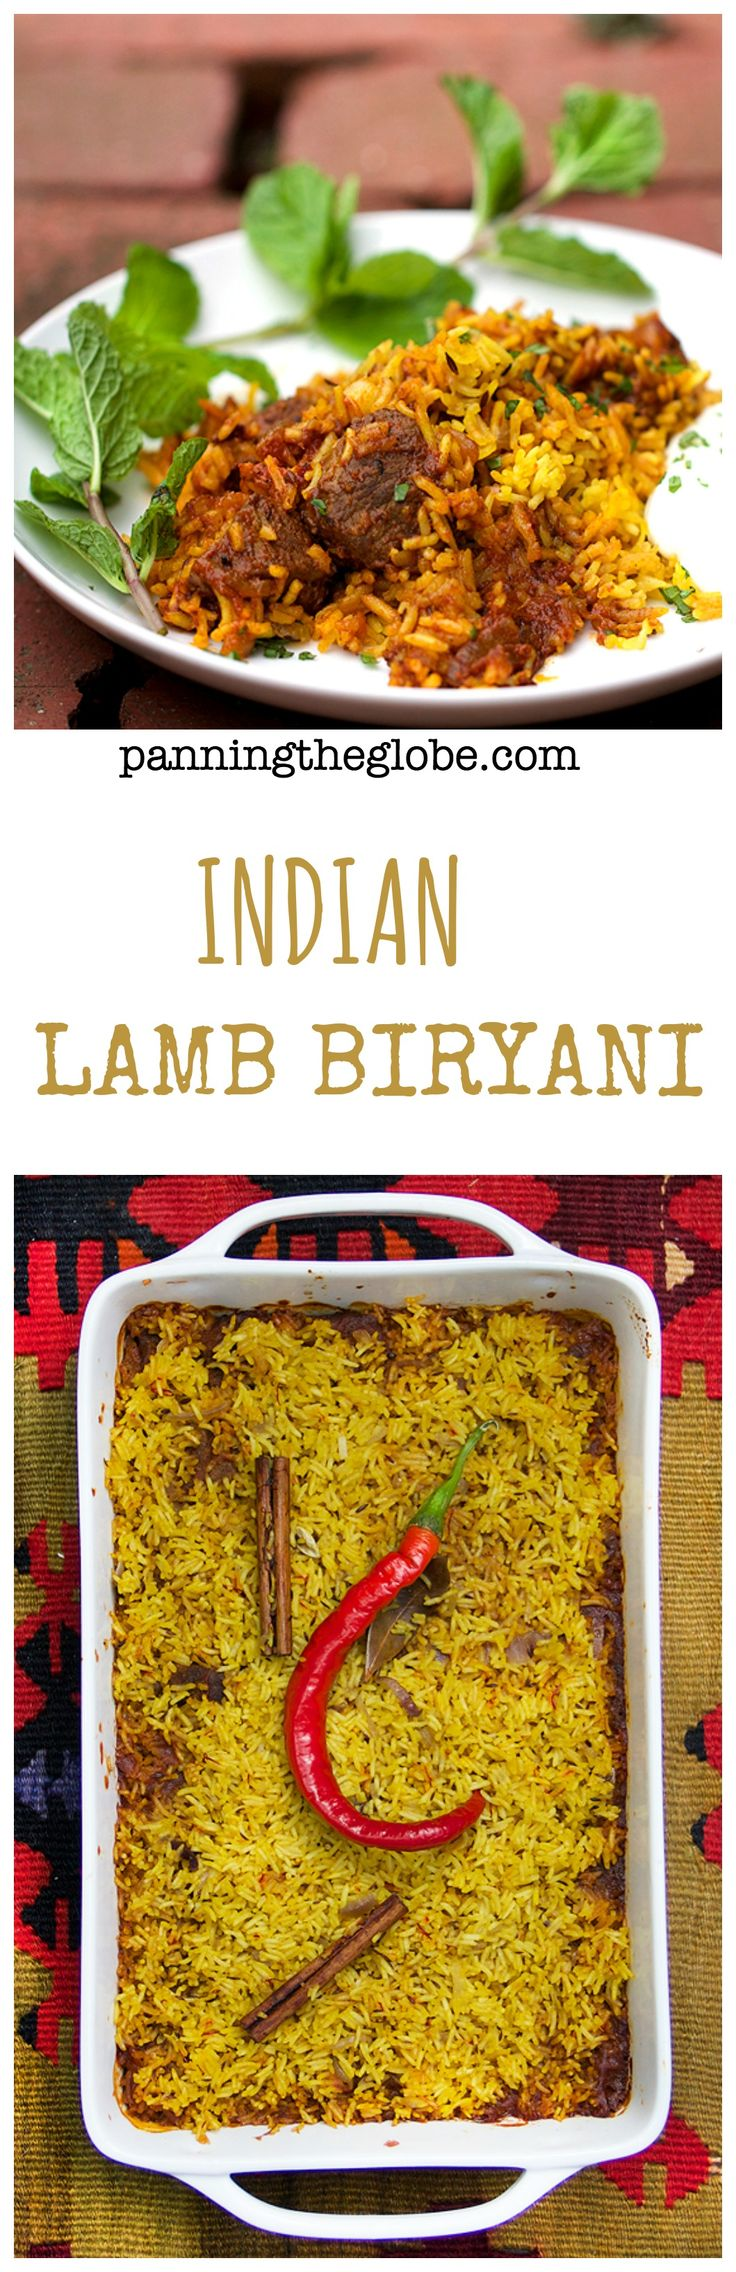 Lamb Biryani: Casserole of tender lamb curry with saffron spiced rice. Cucumber-mint raita on the side.